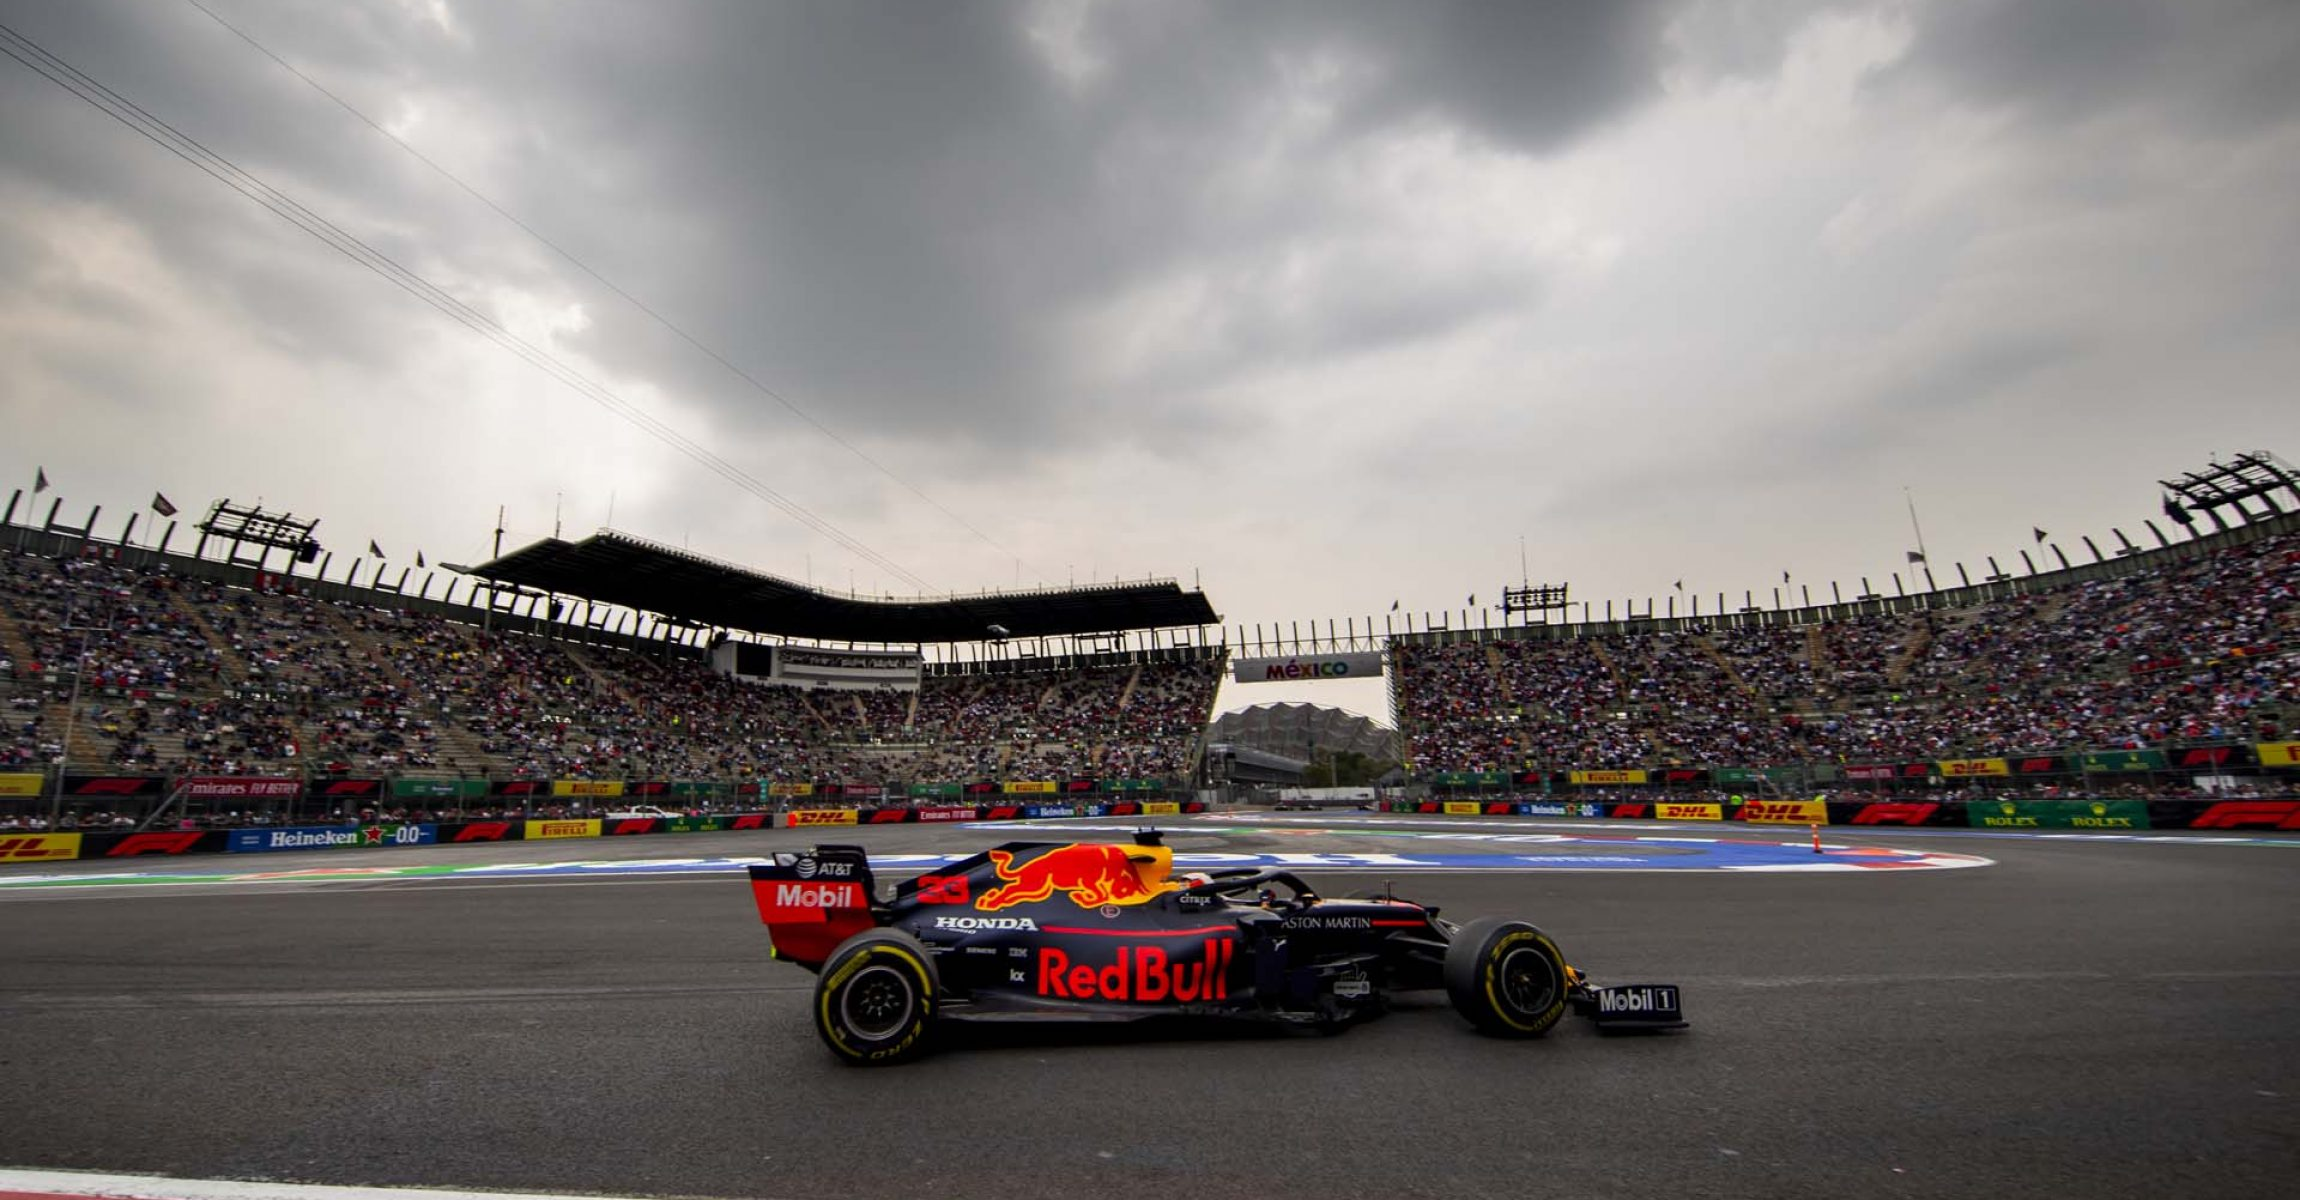 MEXICO CITY, MEXICO - OCTOBER 25: Max Verstappen of the Netherlands driving the (33) Aston Martin Red Bull Racing RB15 on track during practice for the F1 Grand Prix of Mexico at Autodromo Hermanos Rodriguez on October 25, 2019 in Mexico City, Mexico. (Photo by Mark Thompson/Getty Images) // Getty Images / Red Bull Content Pool  // AP-21Z2CR8TH1W11 // Usage for editorial use only //